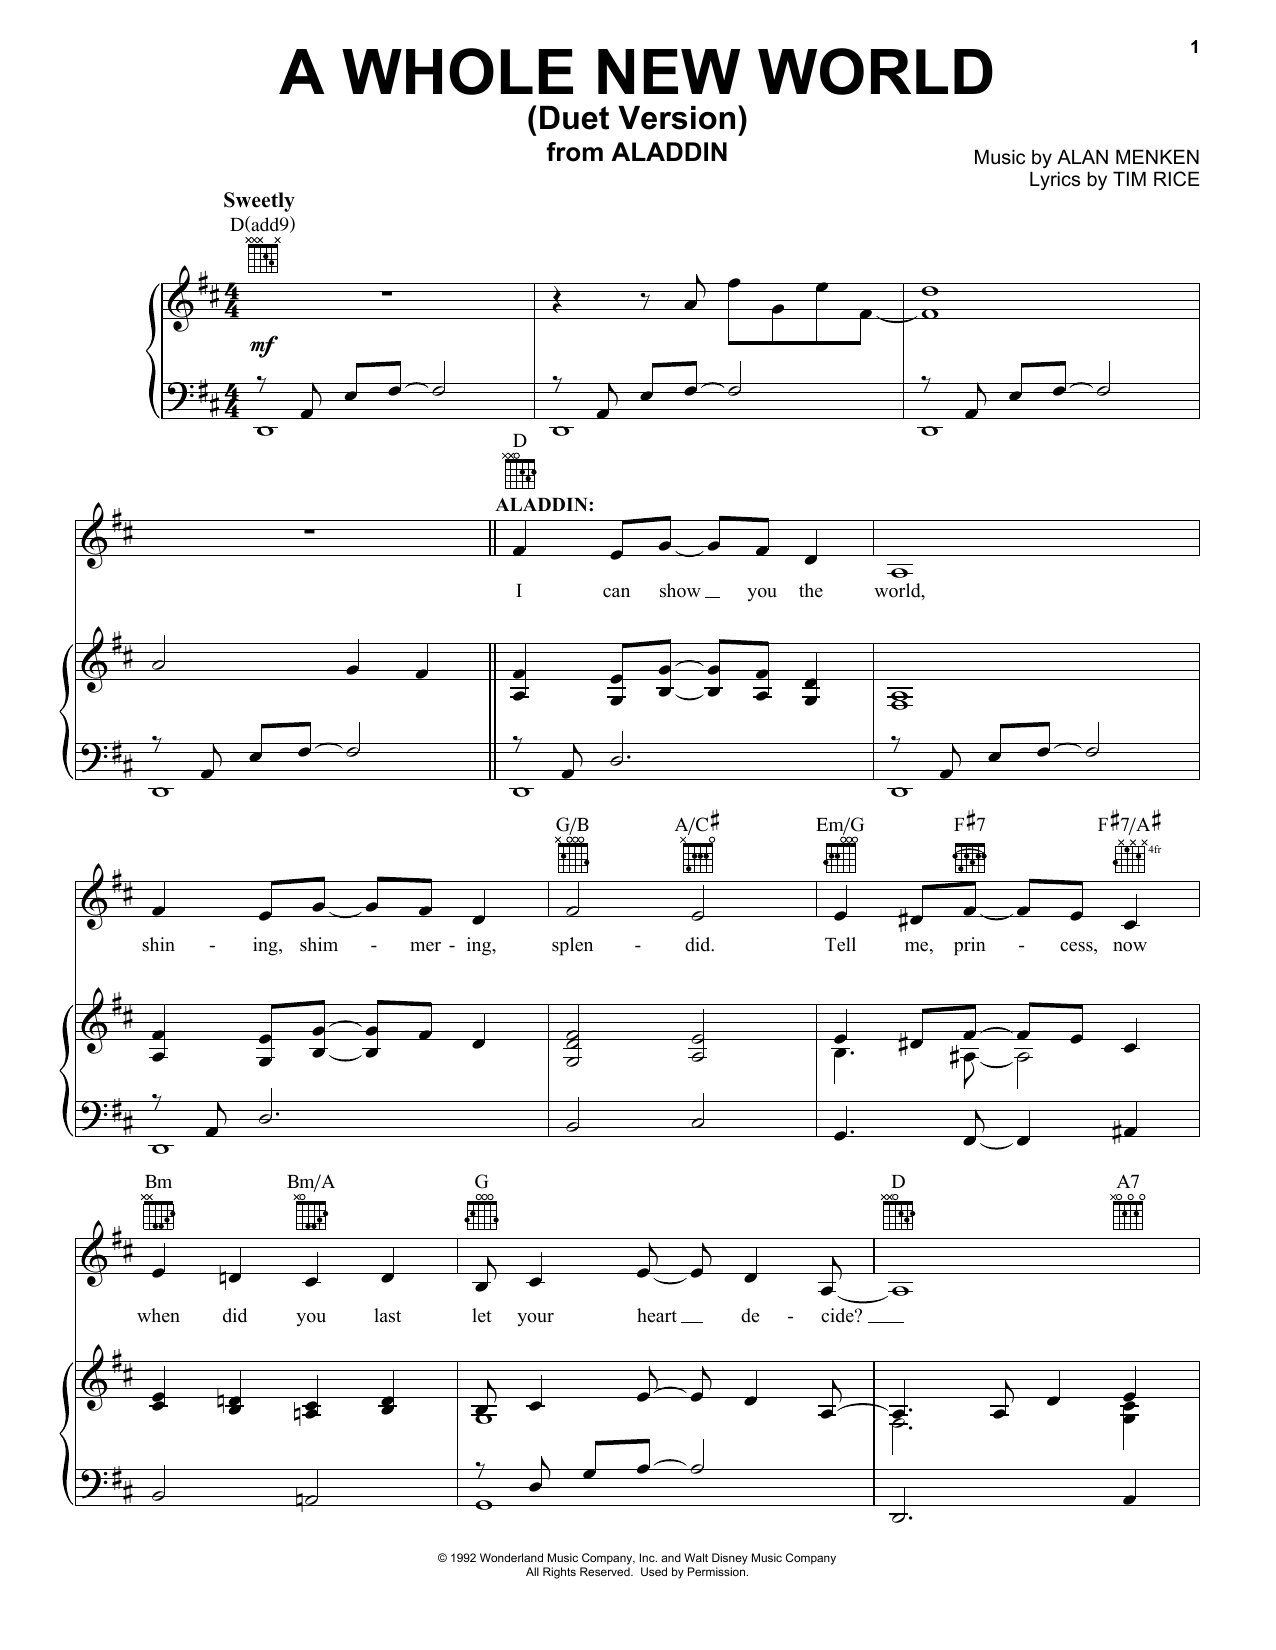 Alan Menken A Whole New World (Duet Version) (from Aladdin) sheet music notes and chords